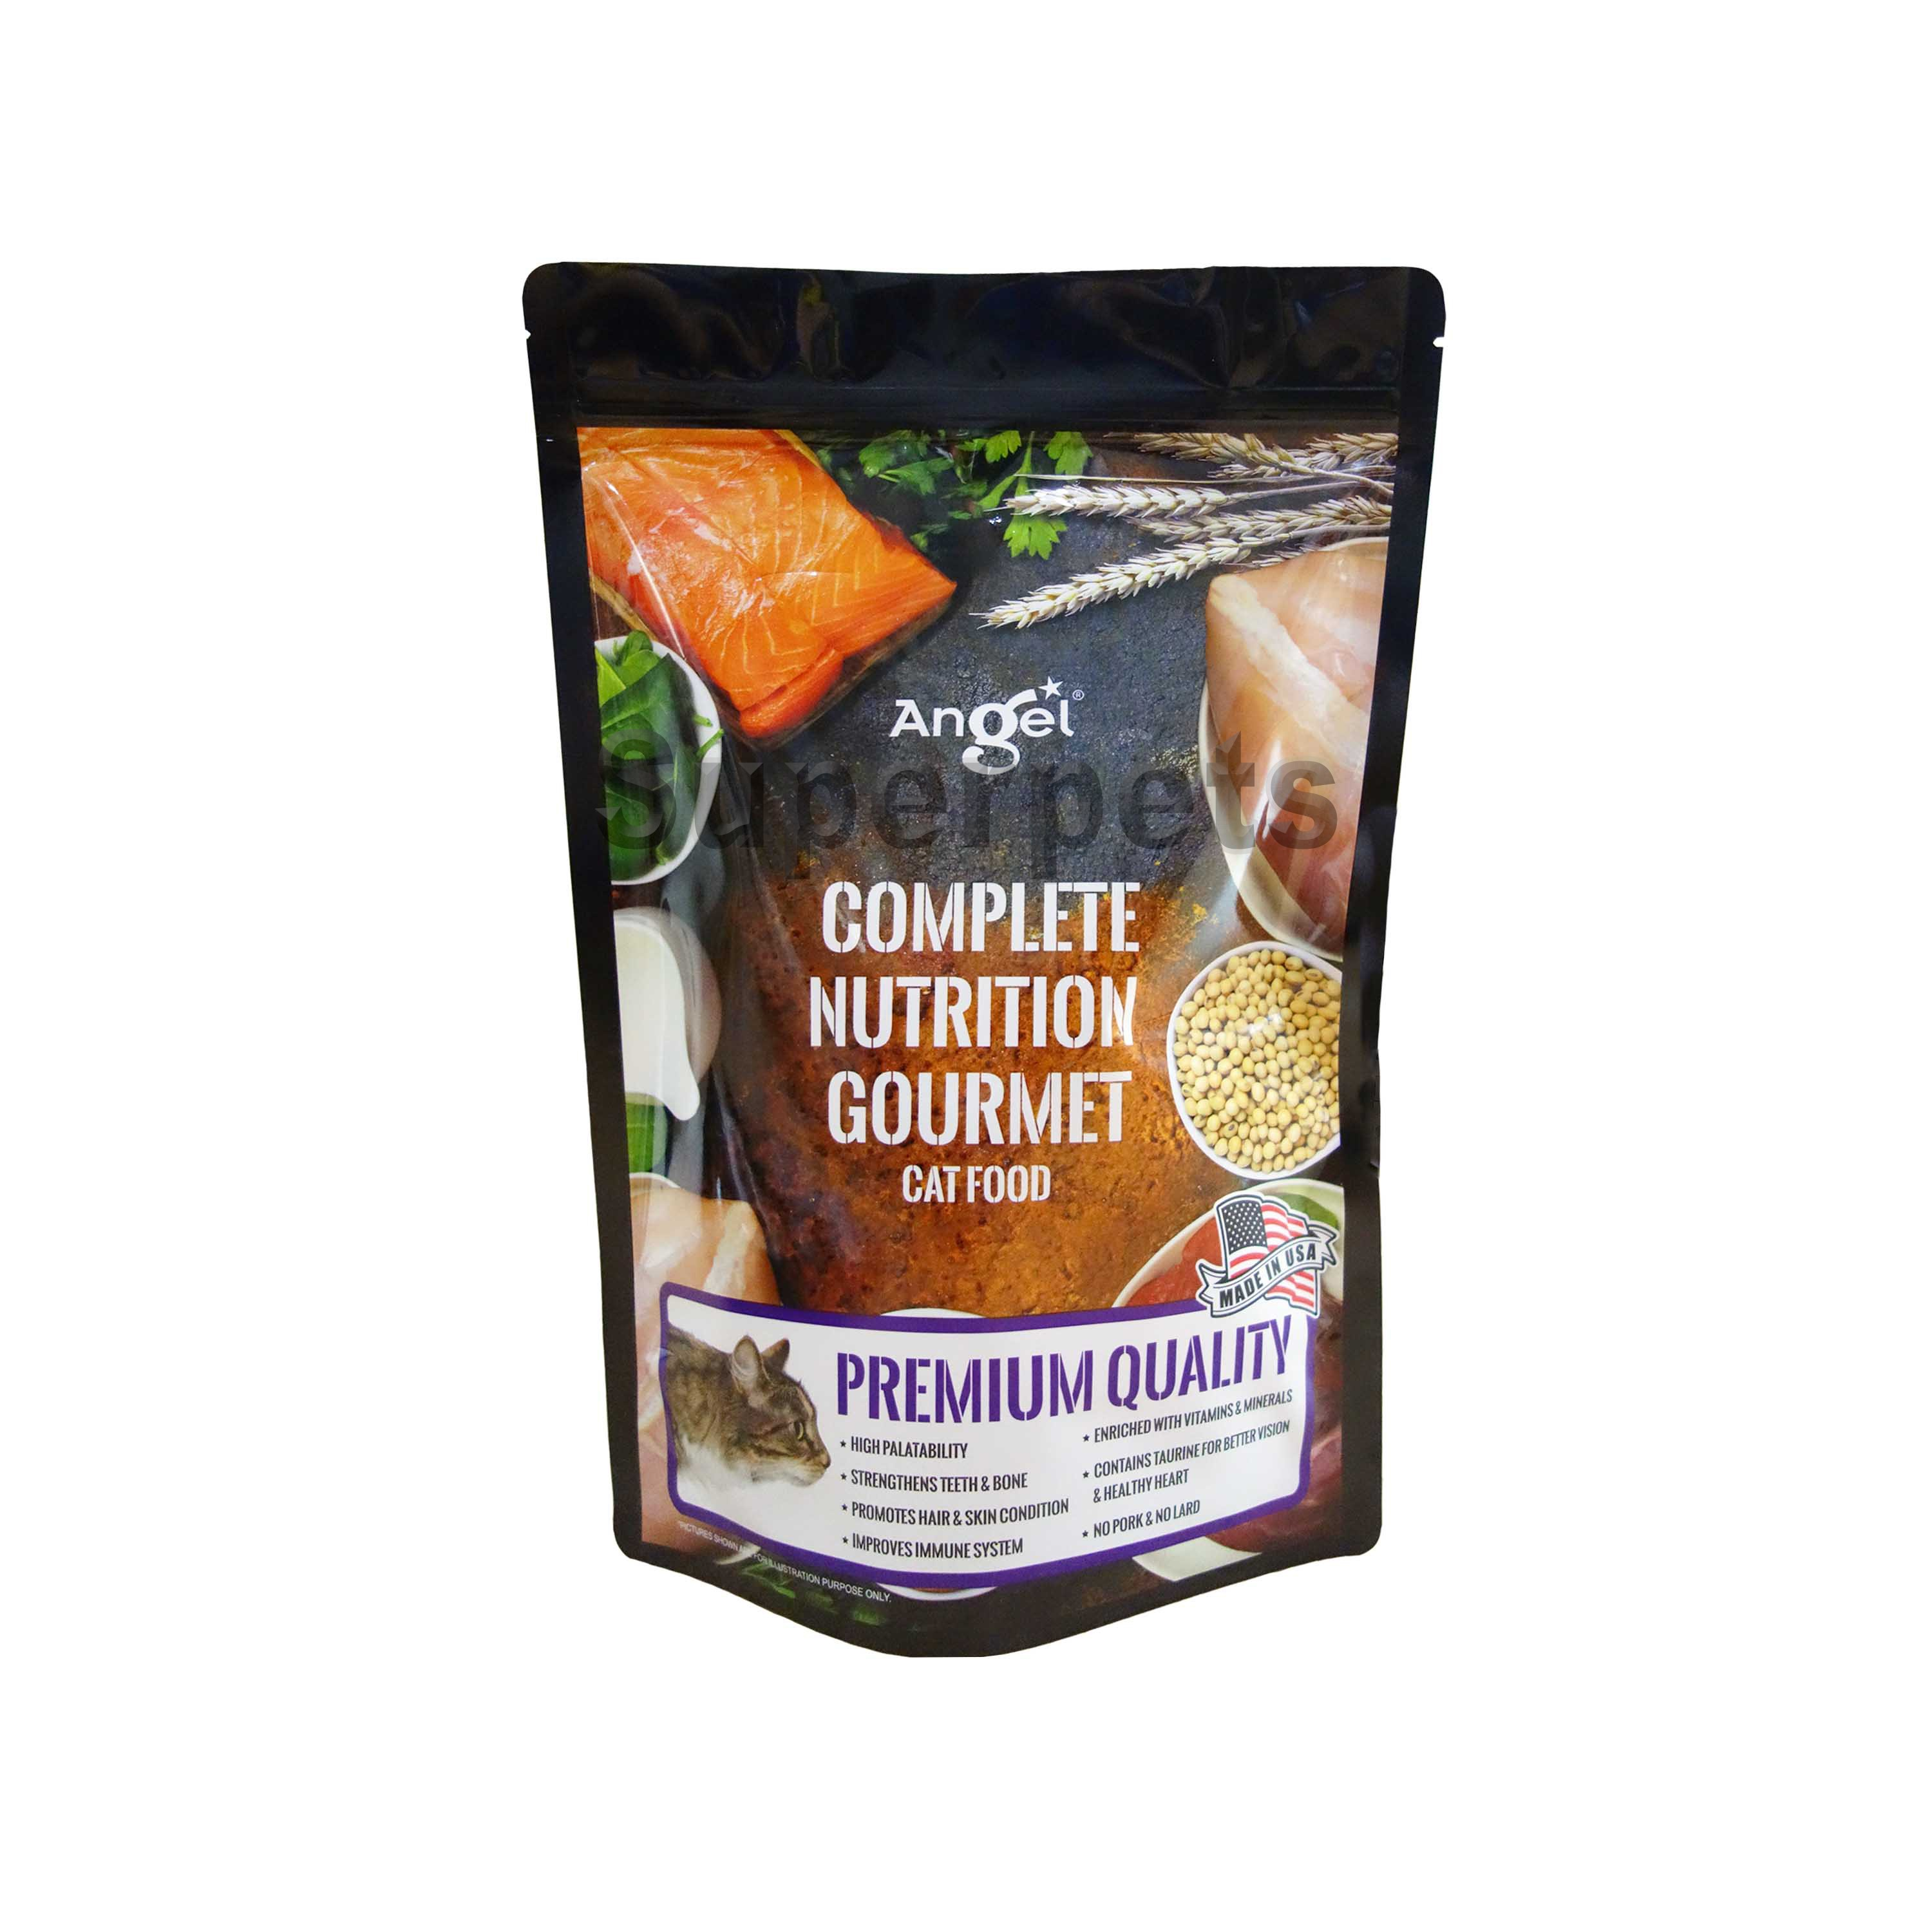 Angel Complete Nutrition Gourmet Cat Food 1.1kg